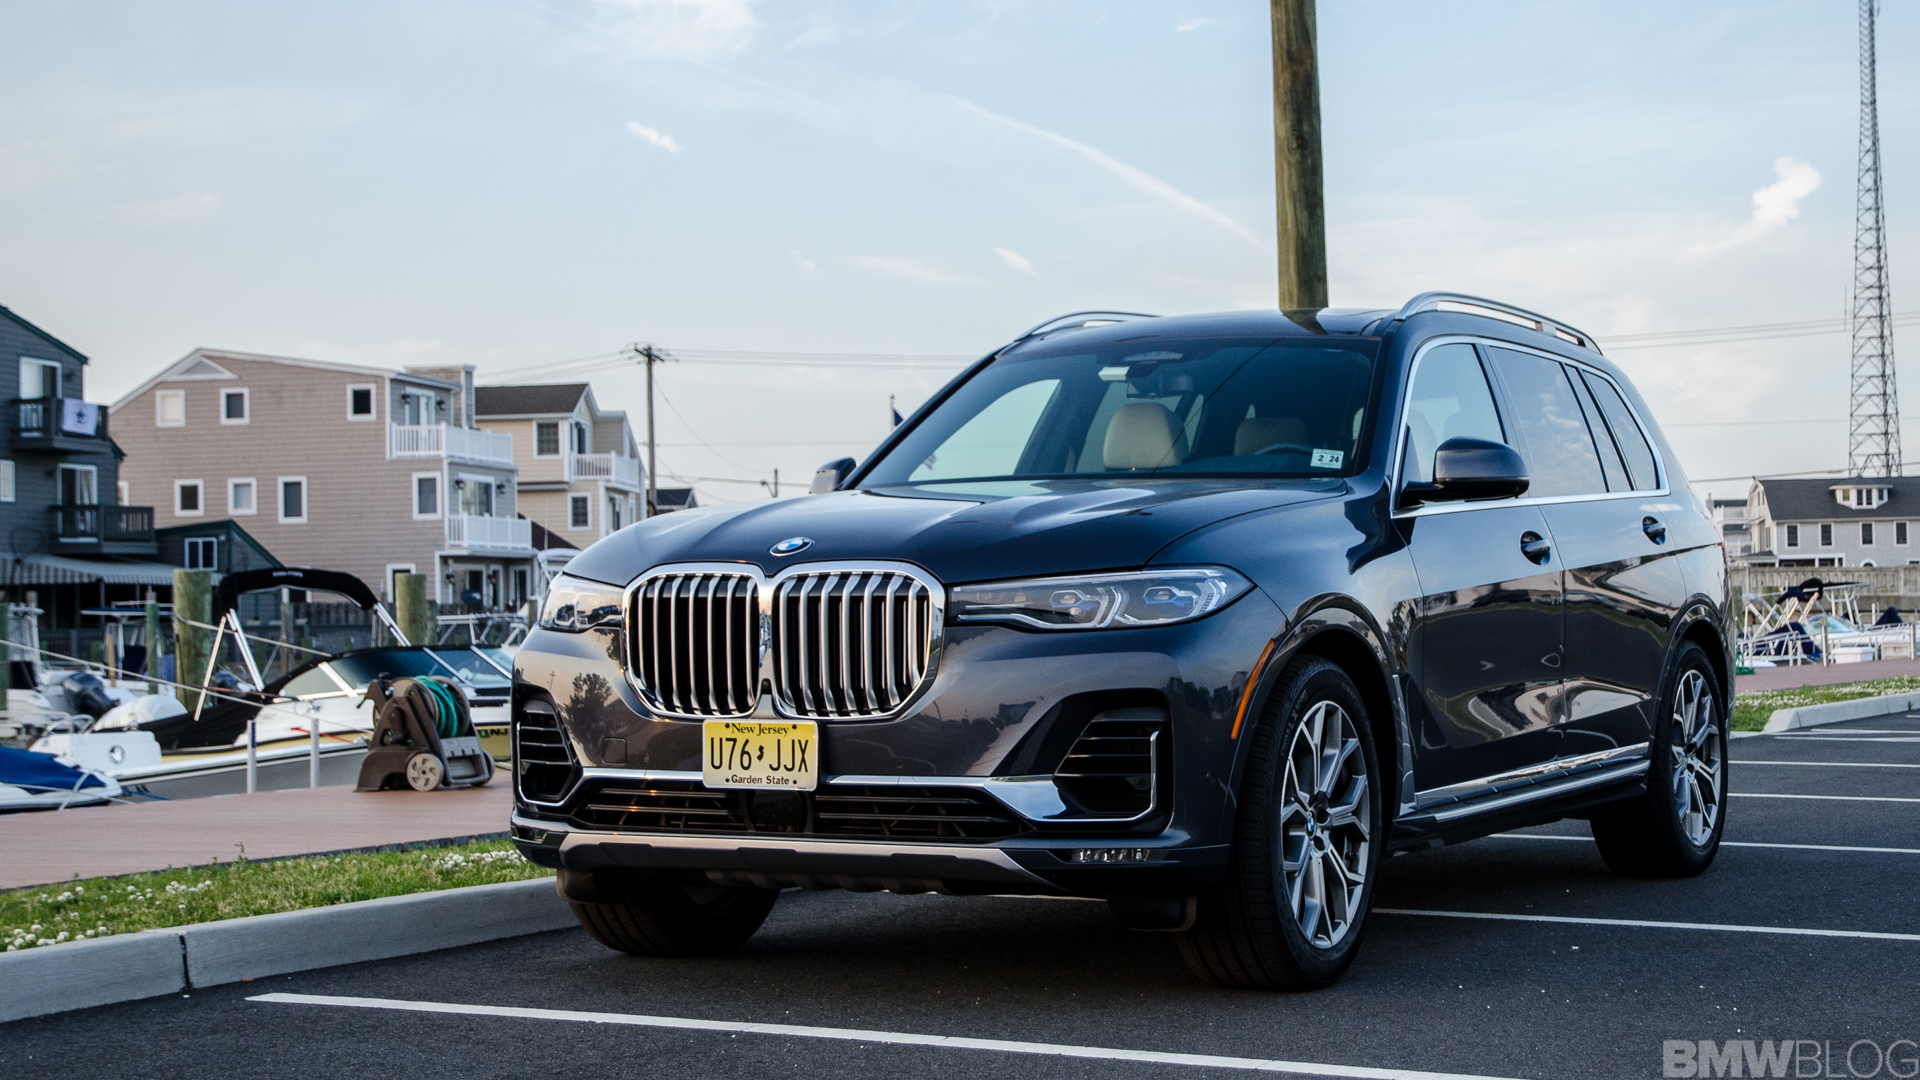 Who's got the better grille? BMW 7 Series Facelift vs. BMW X7